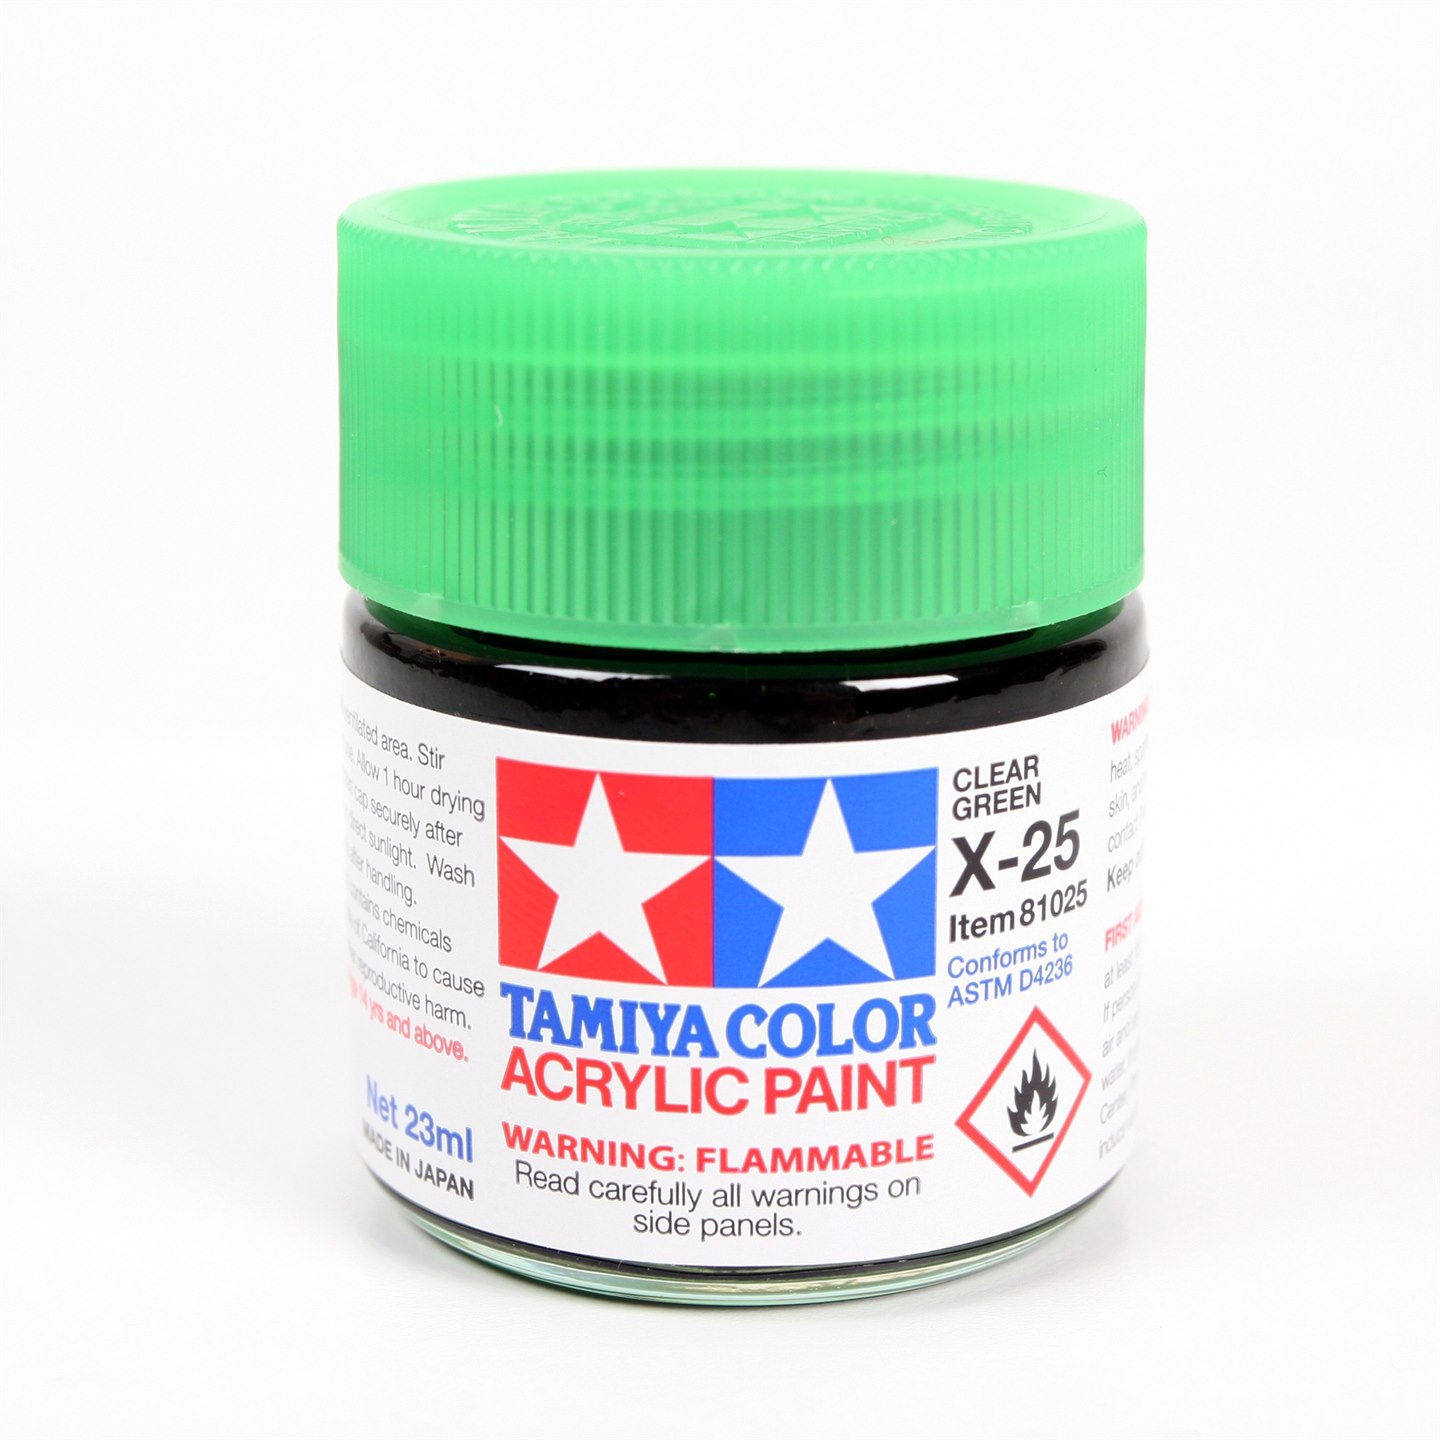 Tamiya Color Acrylic Paint X-25 (Clear Green) (23ml)